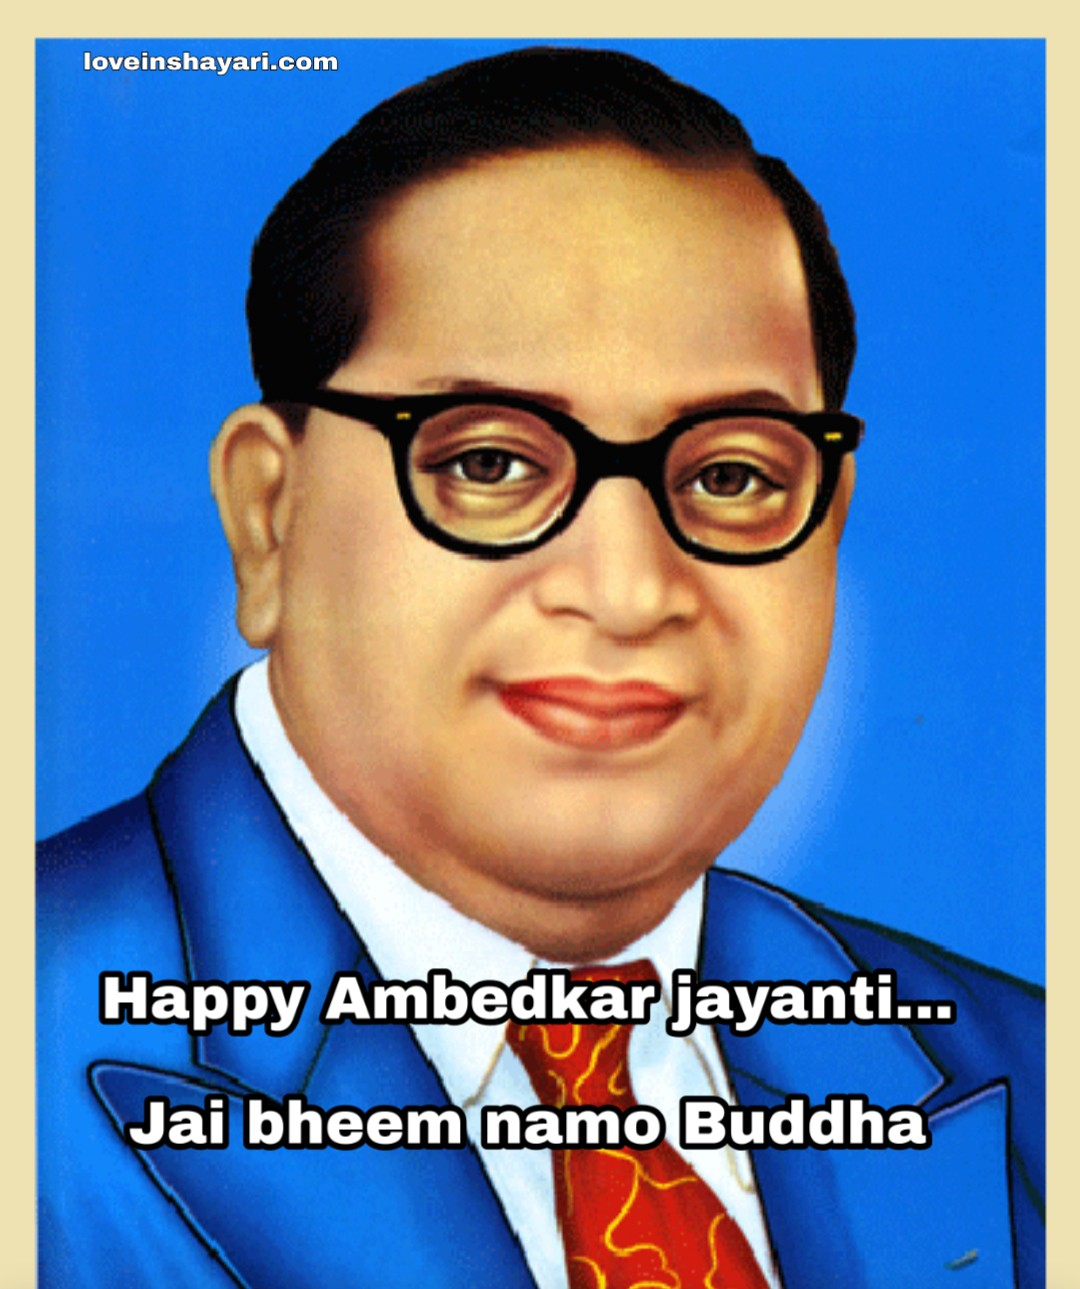 Photo of ambedkar jayanti status whatsapp status 2020